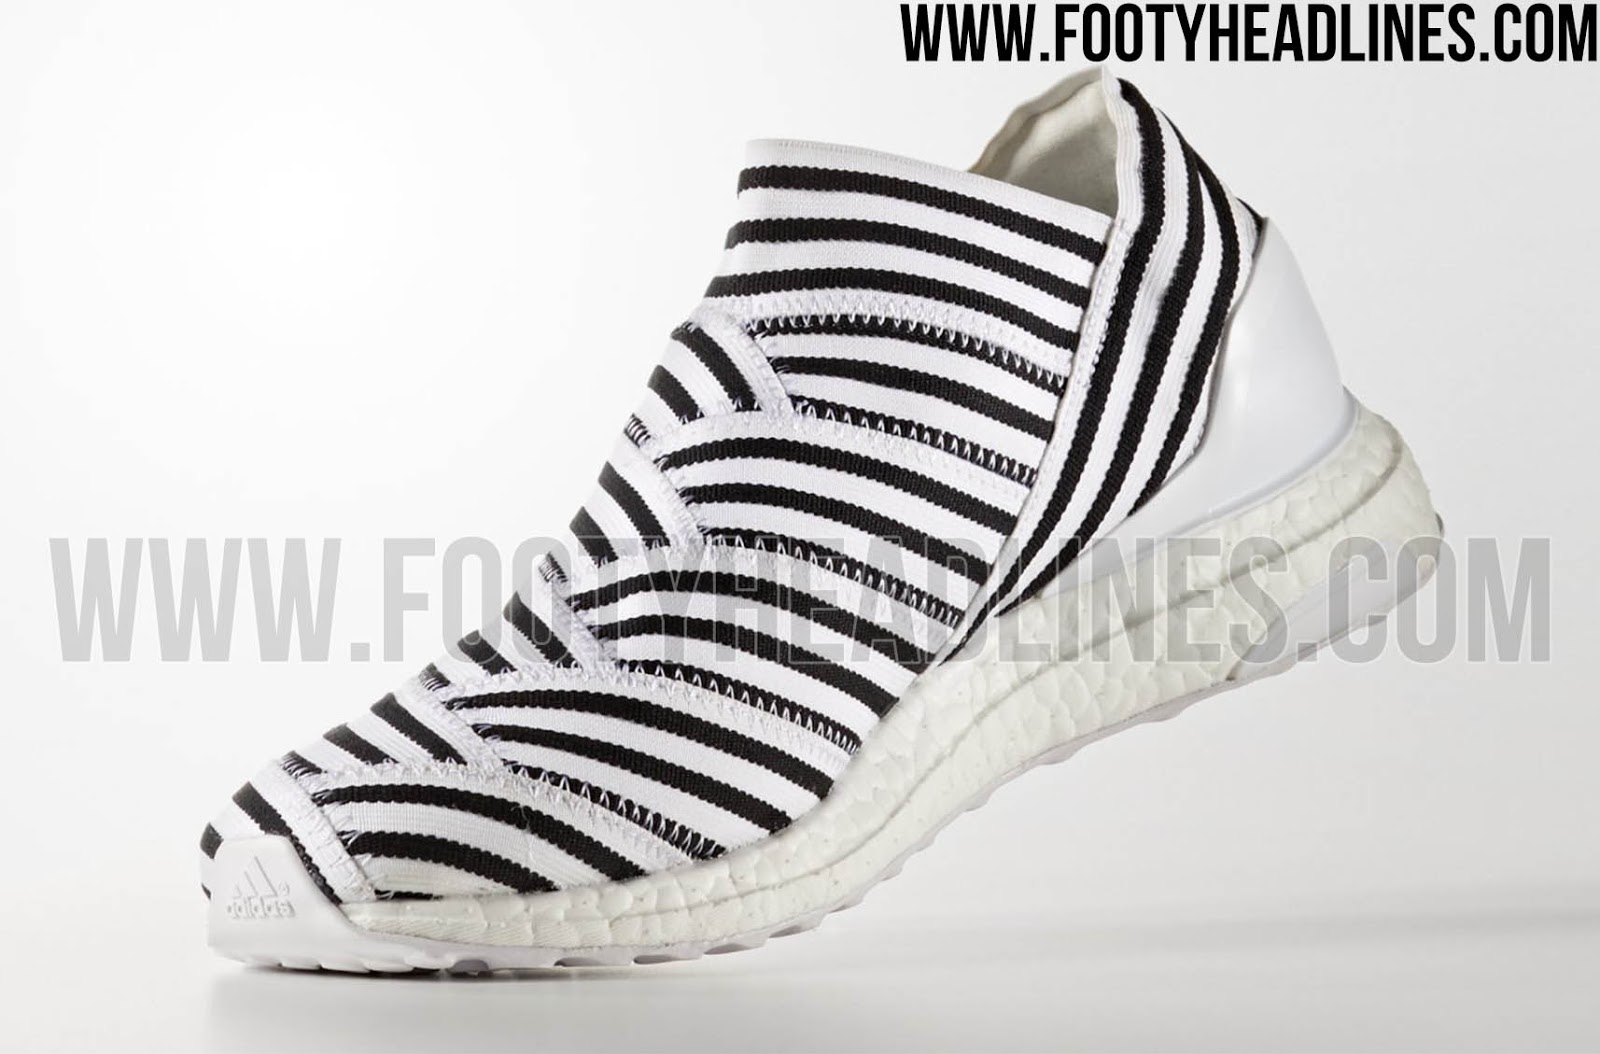 Adidas Nemeziz 17+ 360Agility Ultra Boost Unveiled - Footy Headlines